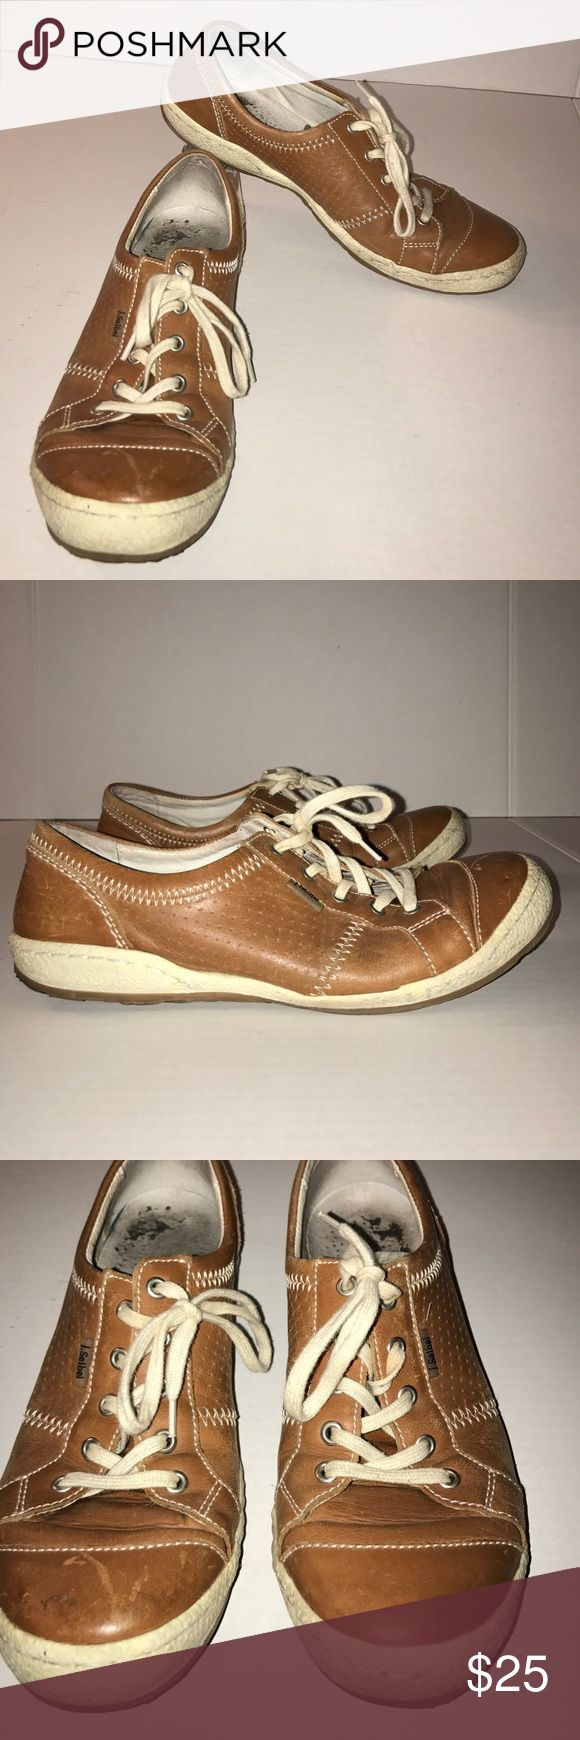 Josef Seibel Sneakers These sneakers by Josef Seibel are in good used condition. They do some some minimal wear but have no major flaws, the interior sole print has worn off. The soles are in good condition and have a ton more wear in them. These are a size 39. Josef Seibel Shoes Sneakers